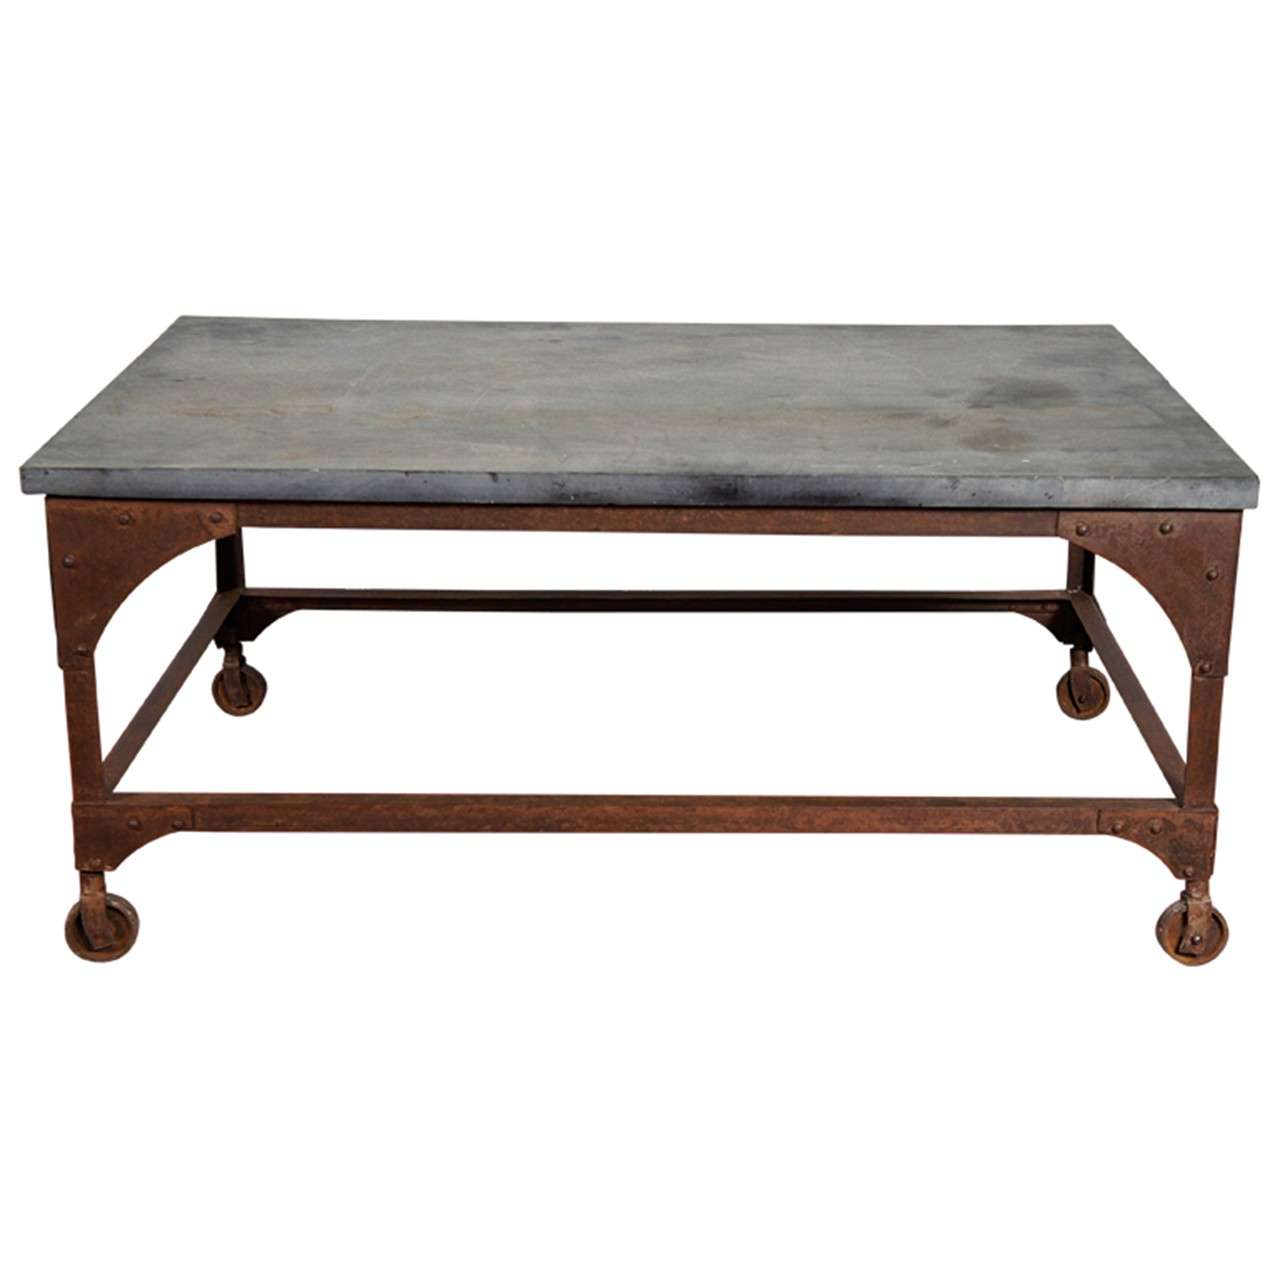 Industrial Belgian Blue Stone and Iron Coffee Table at 1stdibs